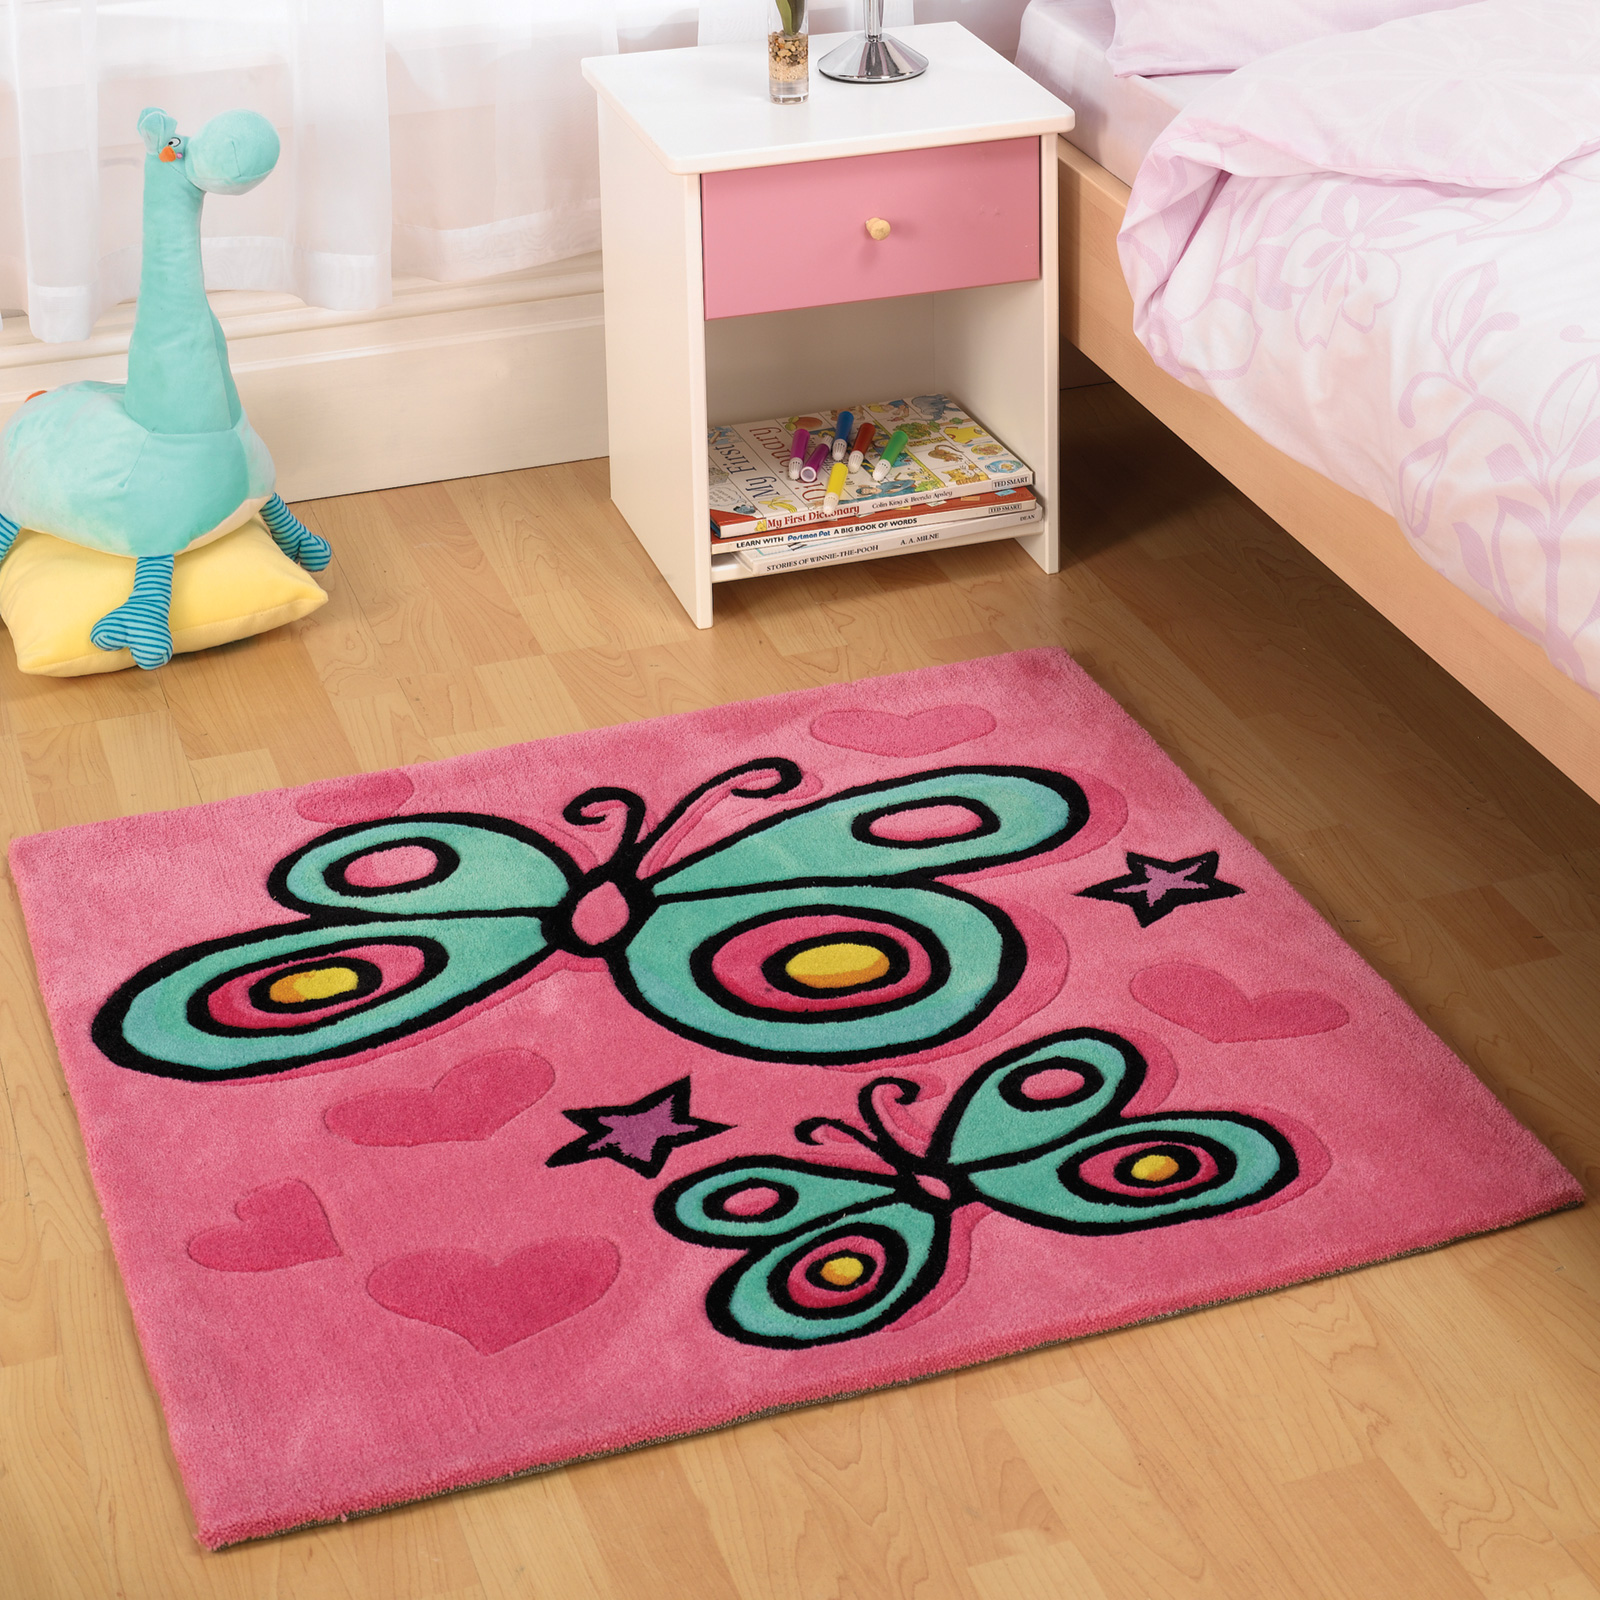 fun playful kids floor carpet rug for children 39 s bedroom nursery